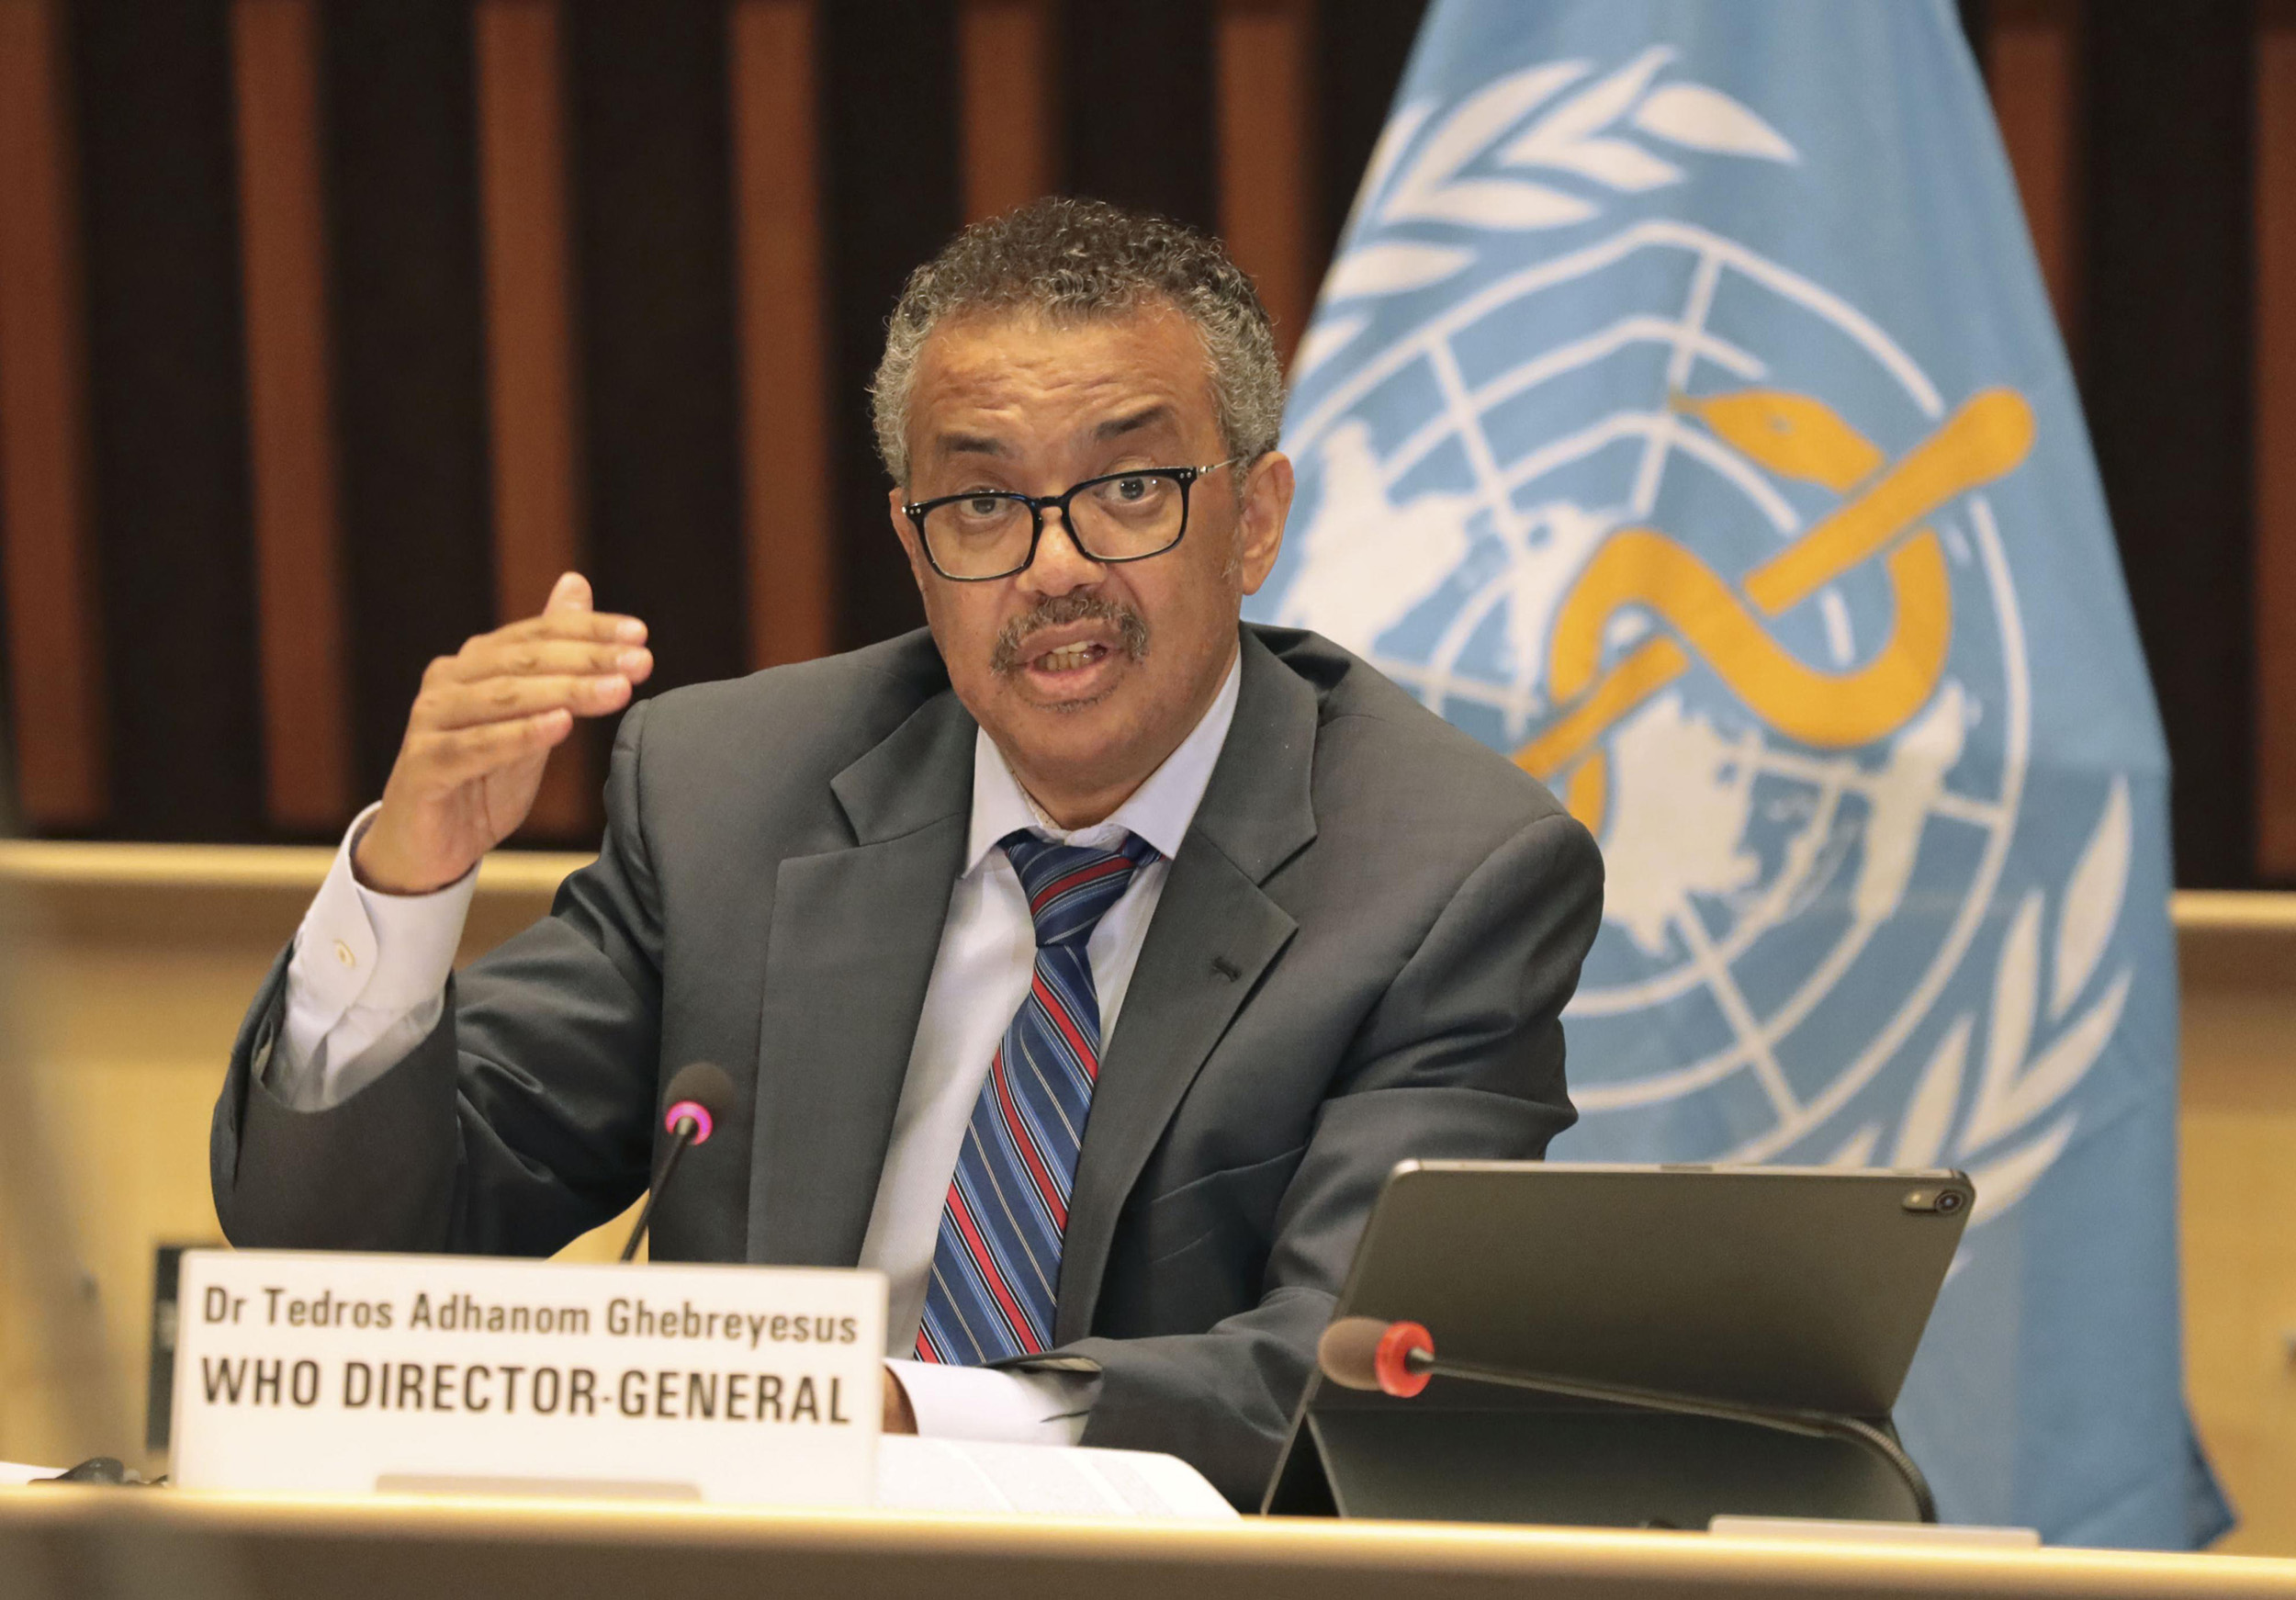 World Health Organization Director General Dr. Tedros Adhanom Ghebreyesus speaks at a news conference at its head office in Geneva on July 3.